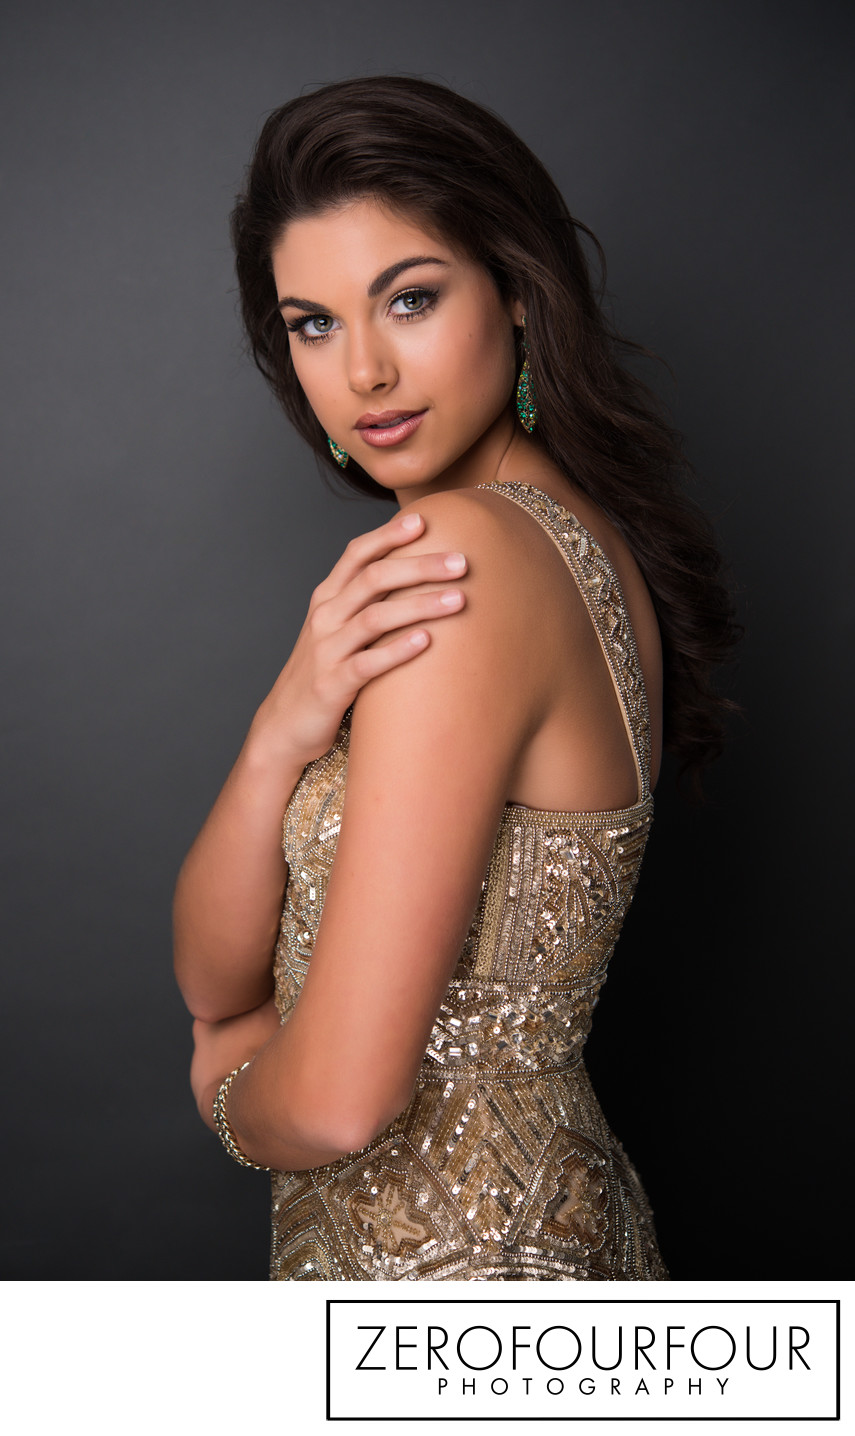 Pageant queen and model studio head shot photo shoot